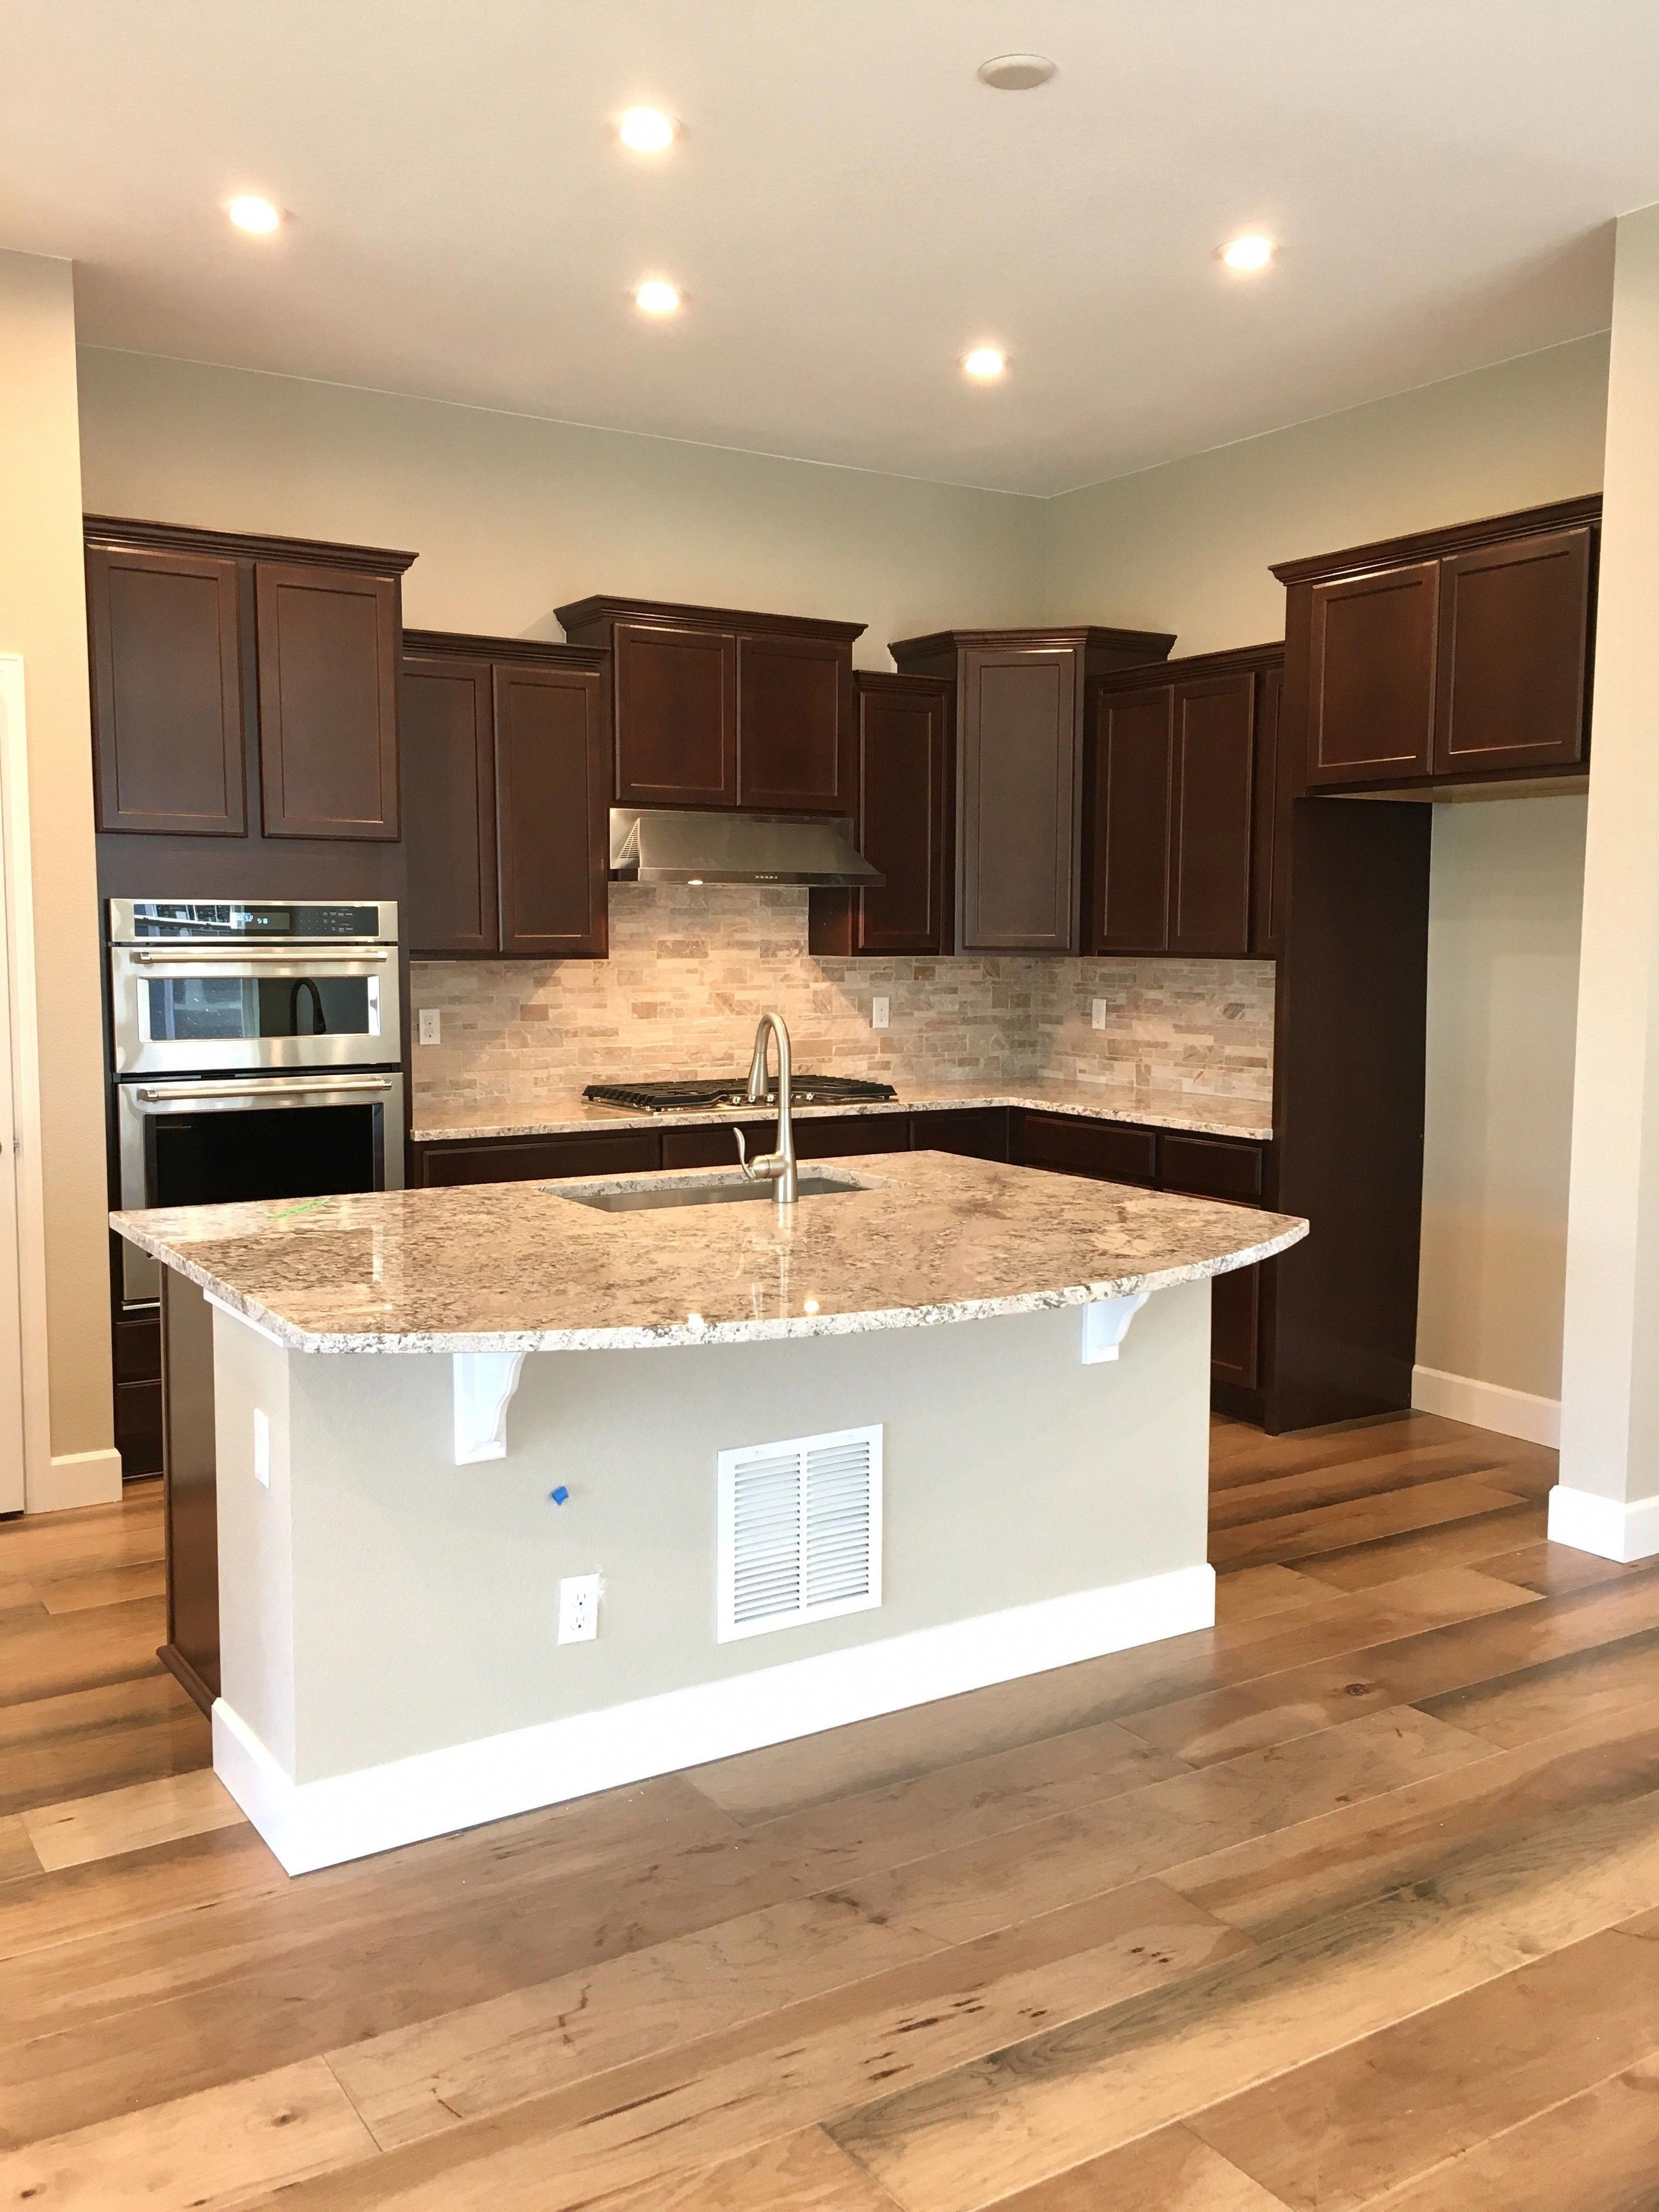 Cherry kitchen cabinets with 9